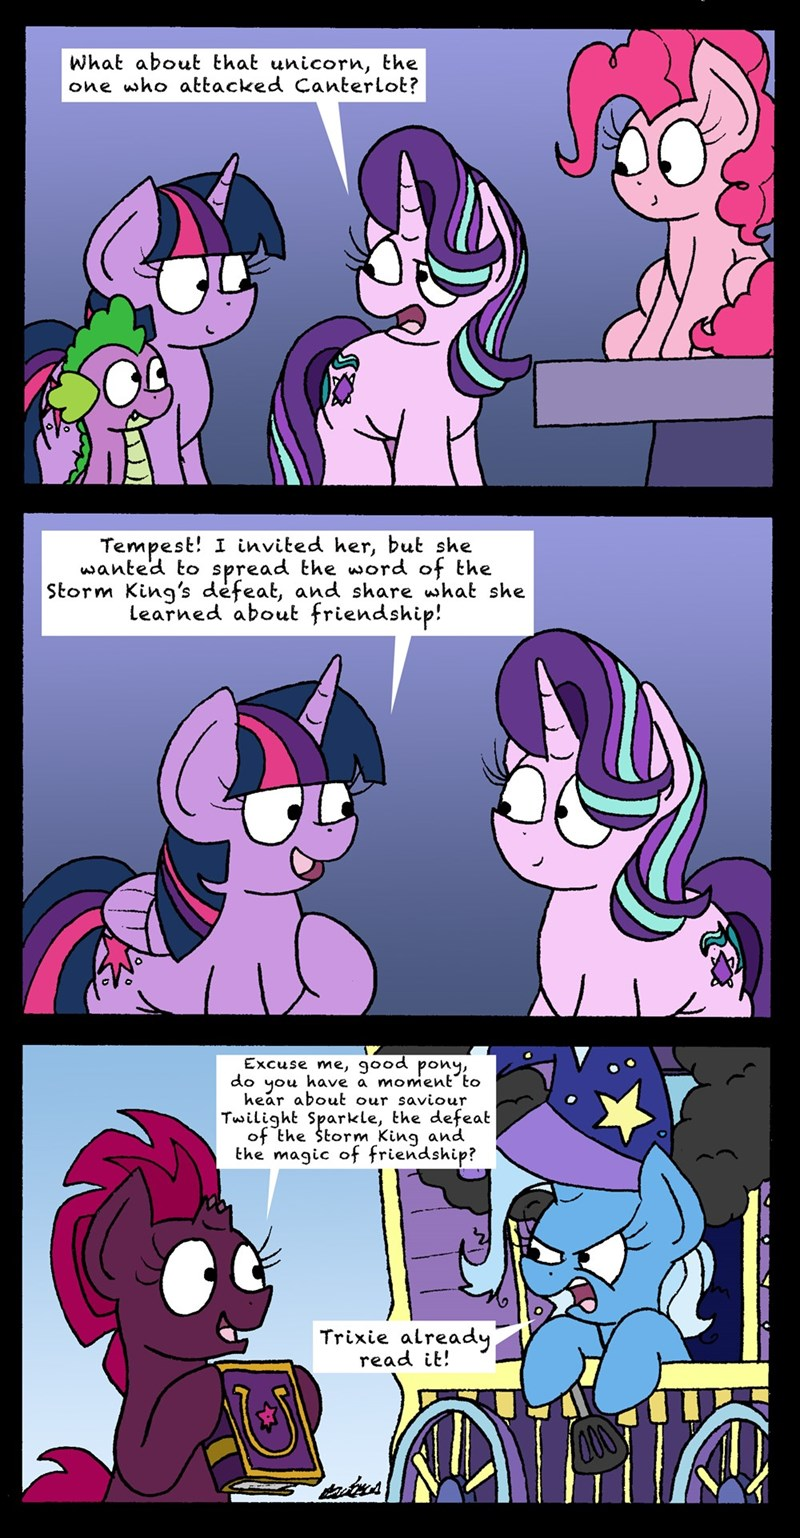 spike tempest shadow the great and powerful trixie bob the dalek starlight glimmer twilight sparkle pinkie pie comic school daze - 9143870464